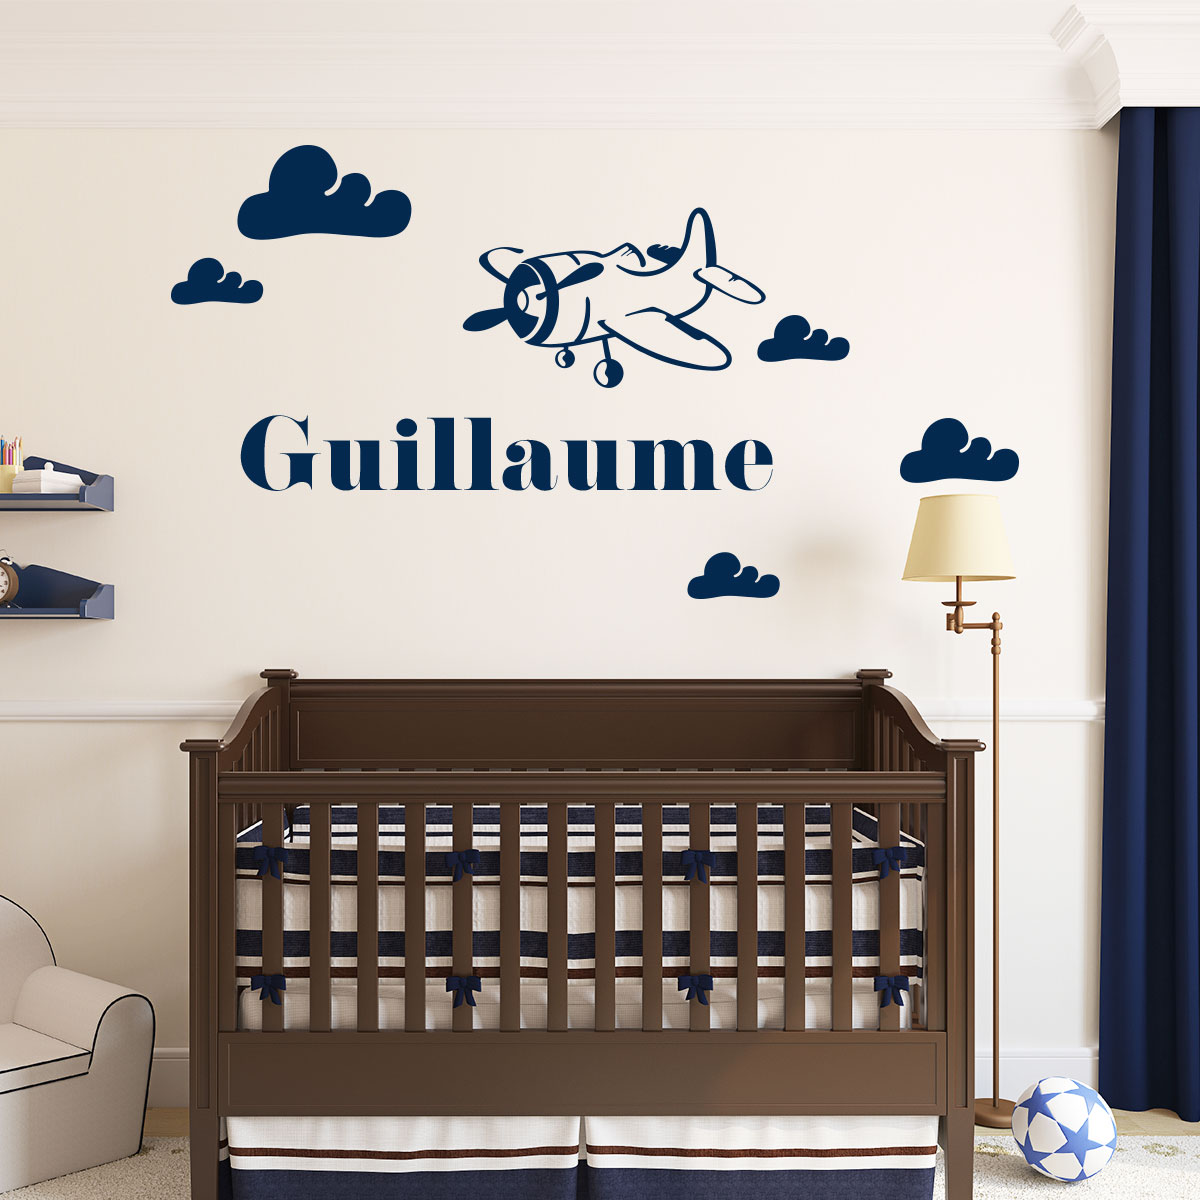 awesome stickers chambre bebe nuage photos awesome. Black Bedroom Furniture Sets. Home Design Ideas